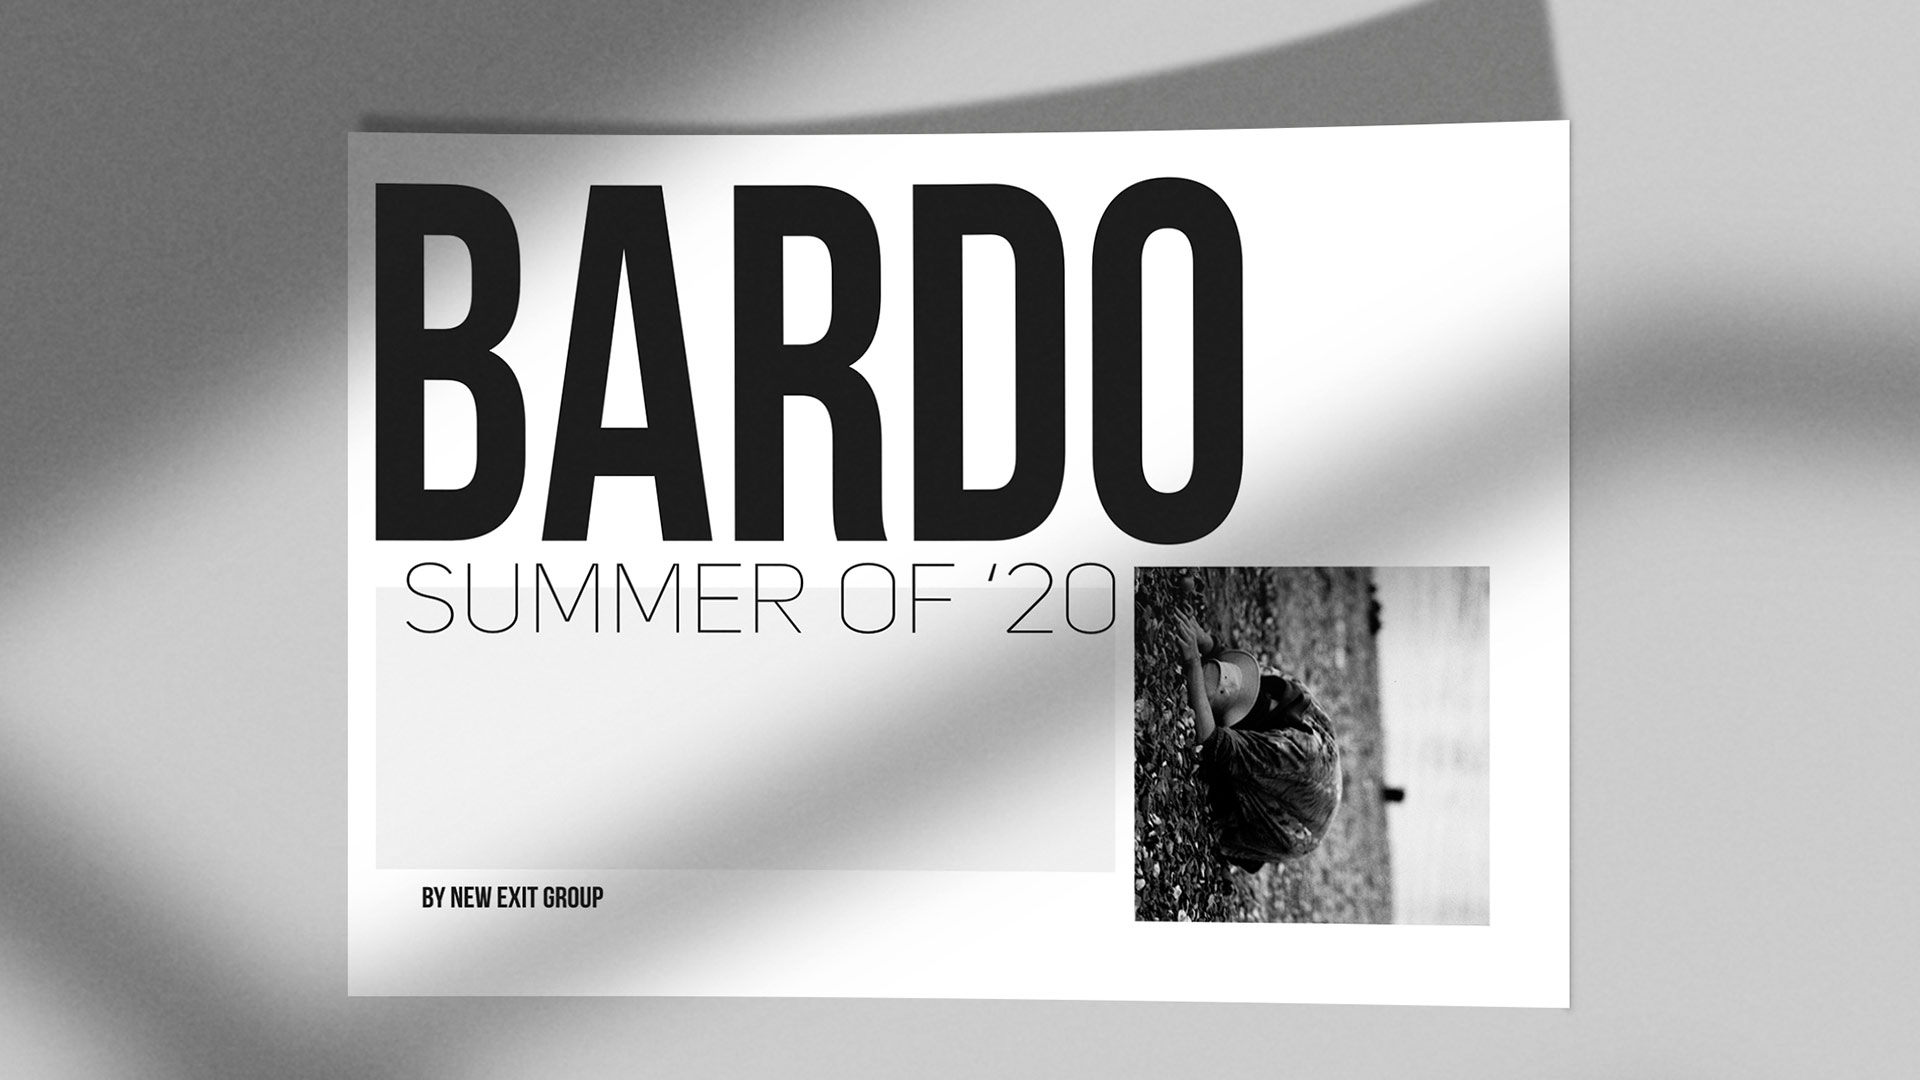 BARDO: Summer of '20